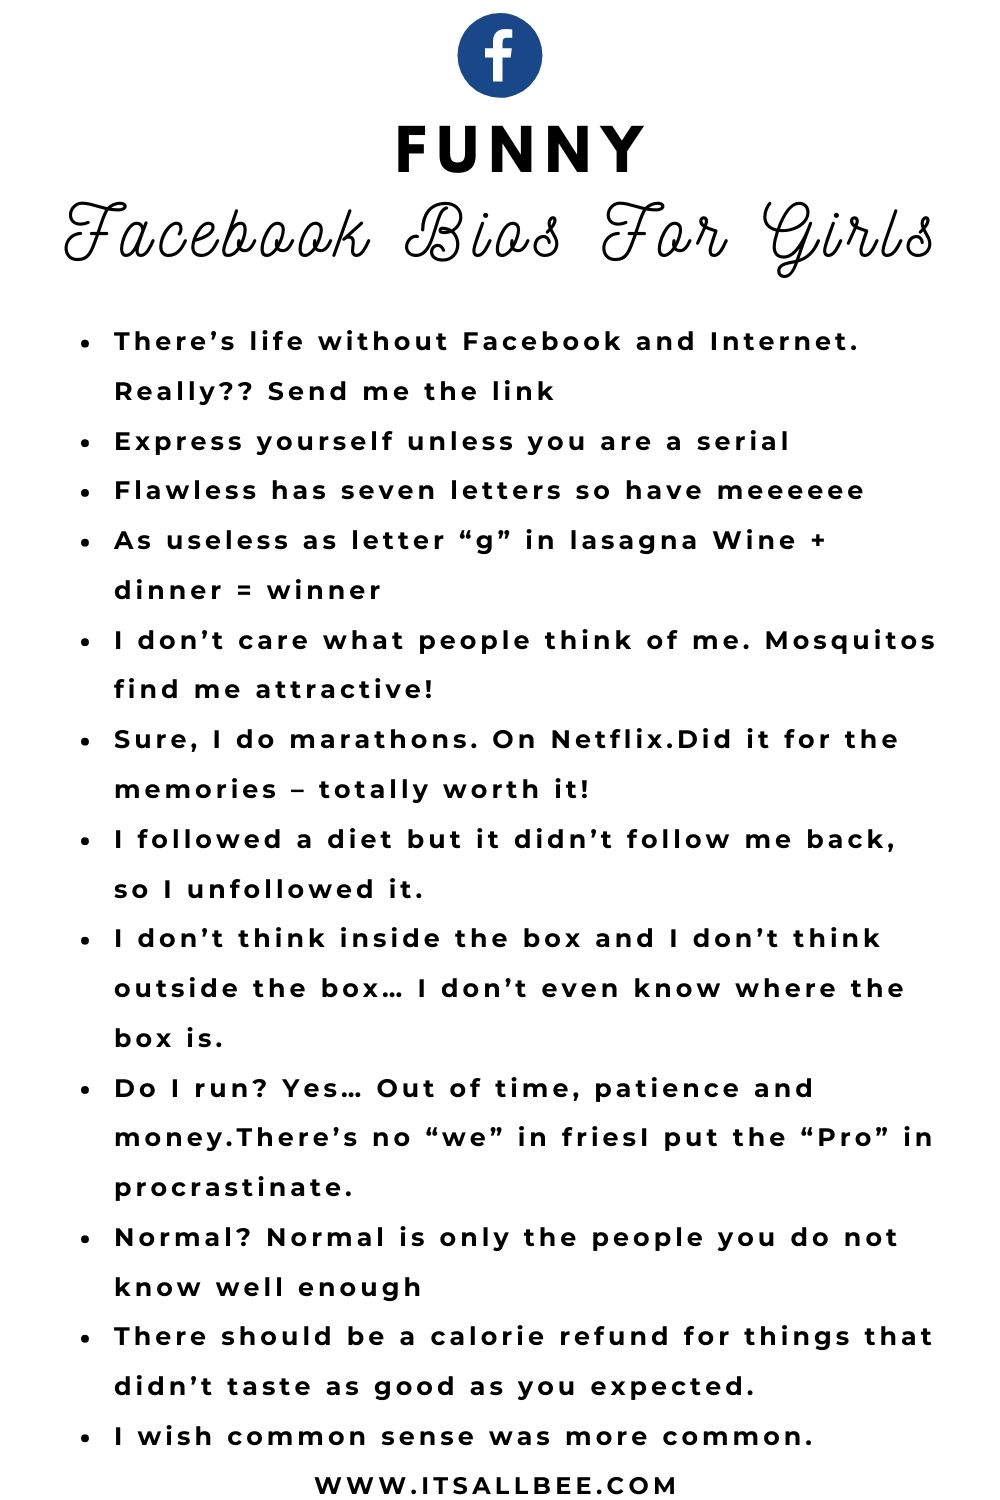 100 Cool Witty Sassy Facebook Bios For Girls Itsallbee Travel Blog Facebook Bio Facebook Bio Quotes Bio Quotes